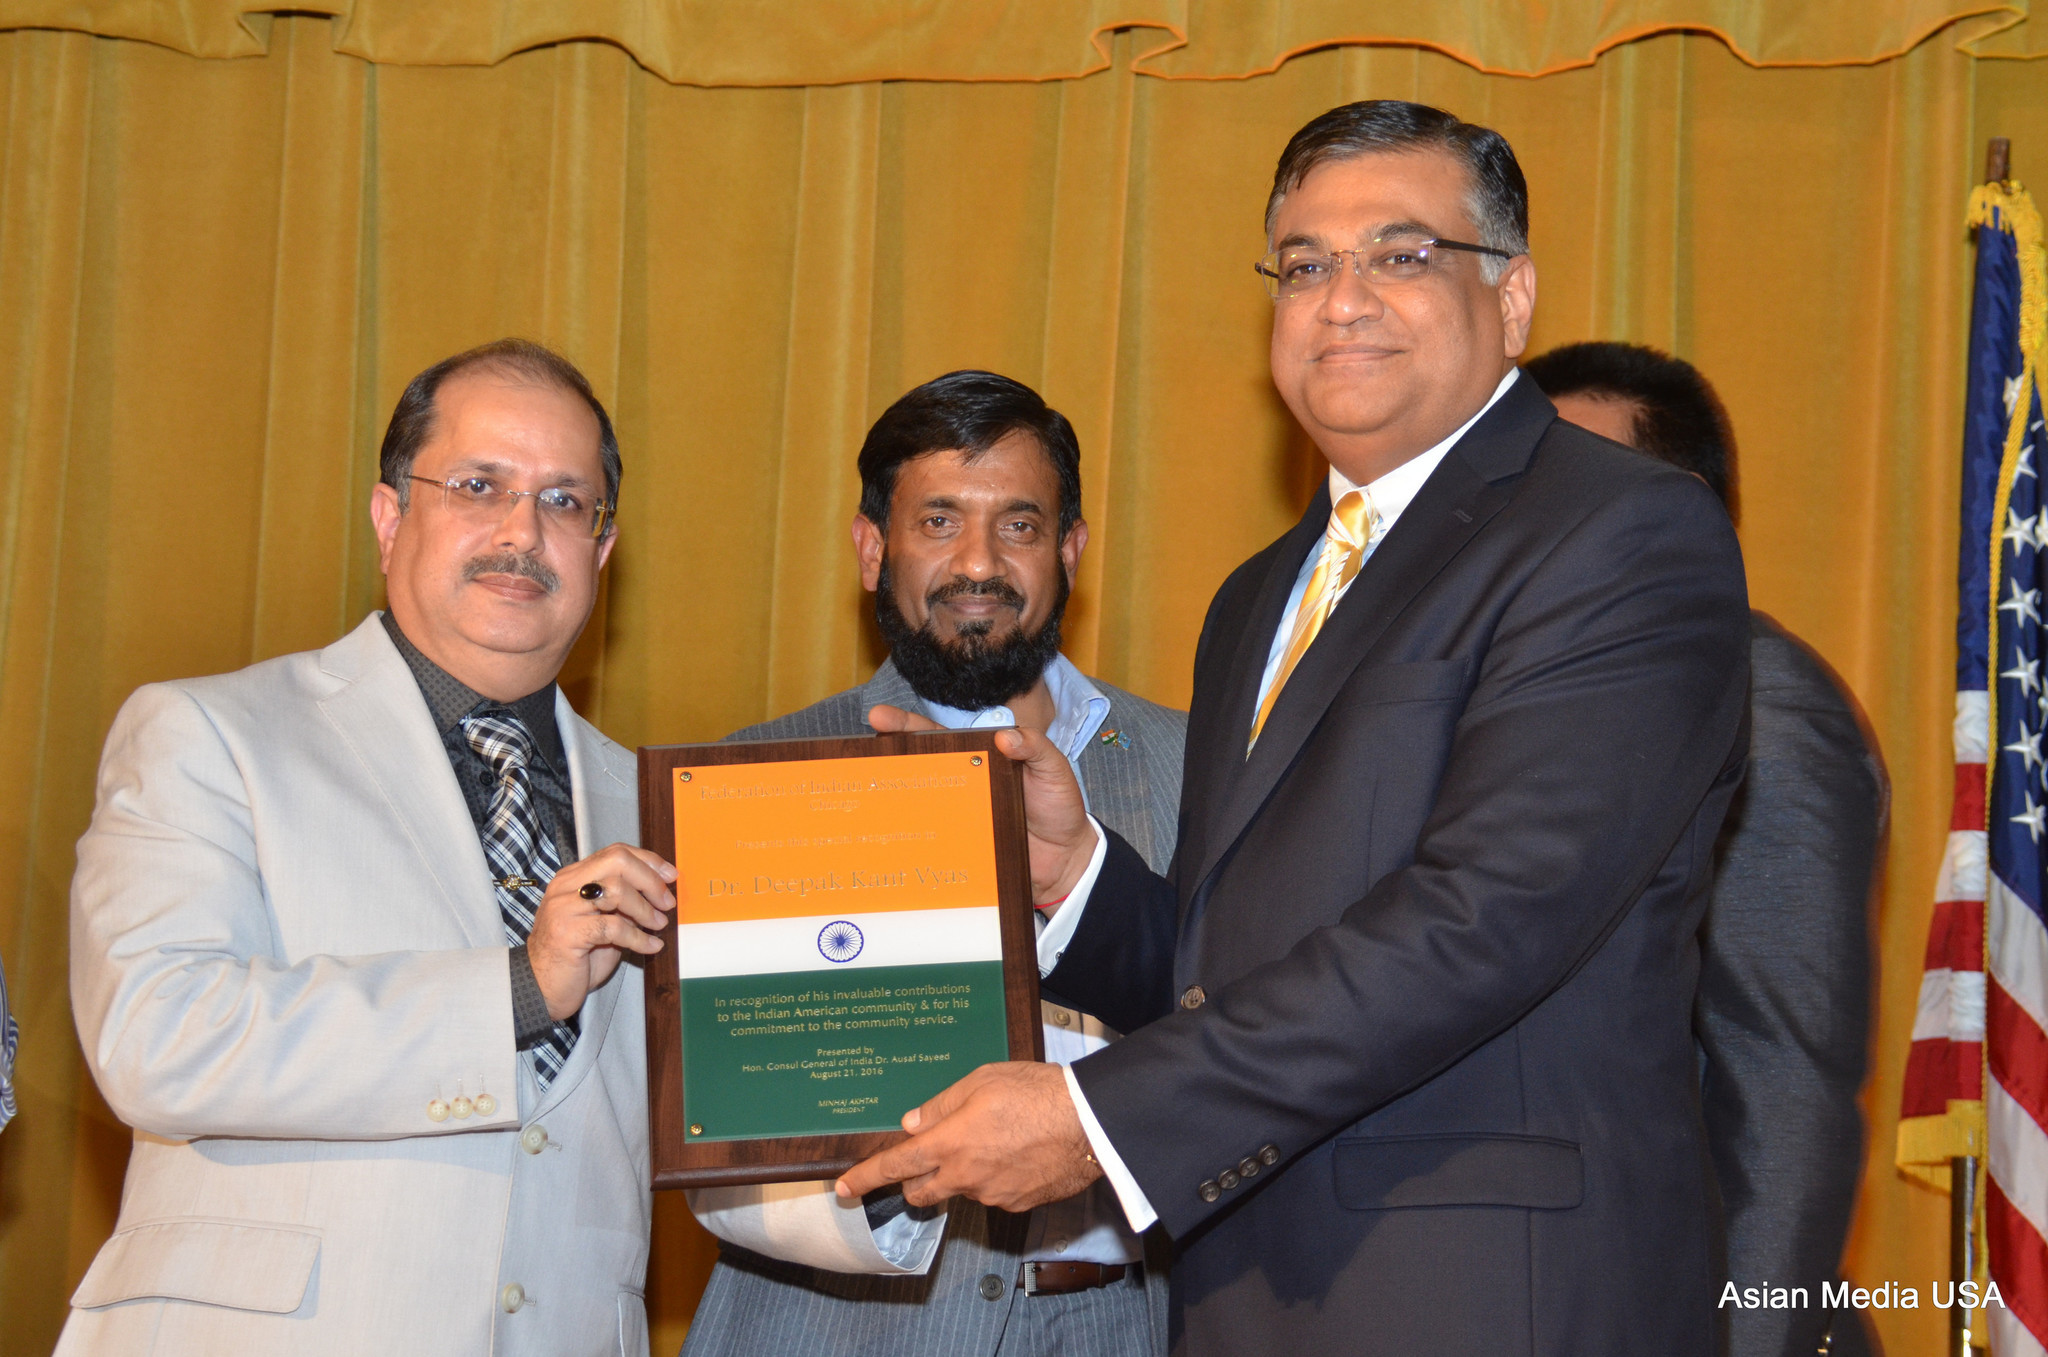 fia chicago 1980 leadership unites to bring dignity on occasion fia chicago 1980 leadership unites to bring dignity on occasion of 70th n independence day celebrations in chicagoland area skokie review